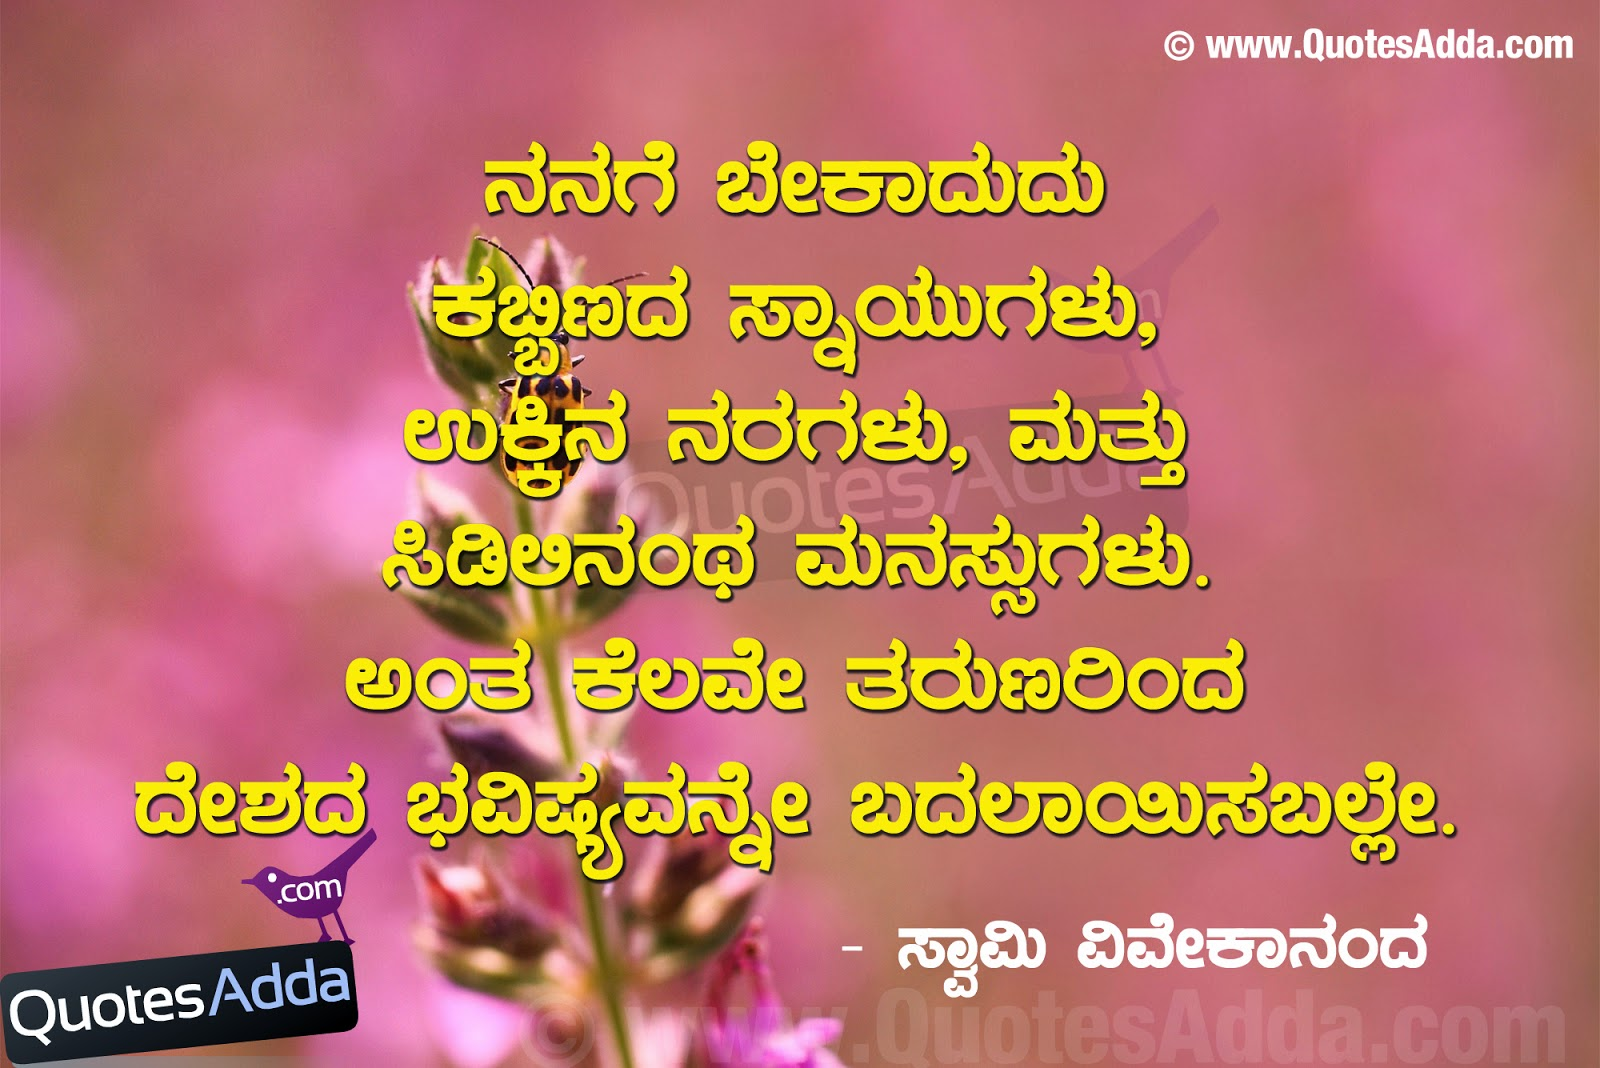 Sad Love Quotes For Him In Kannada : Kannada Language Swami Vivekanada Quotations QuotesAdda.com Telugu ...